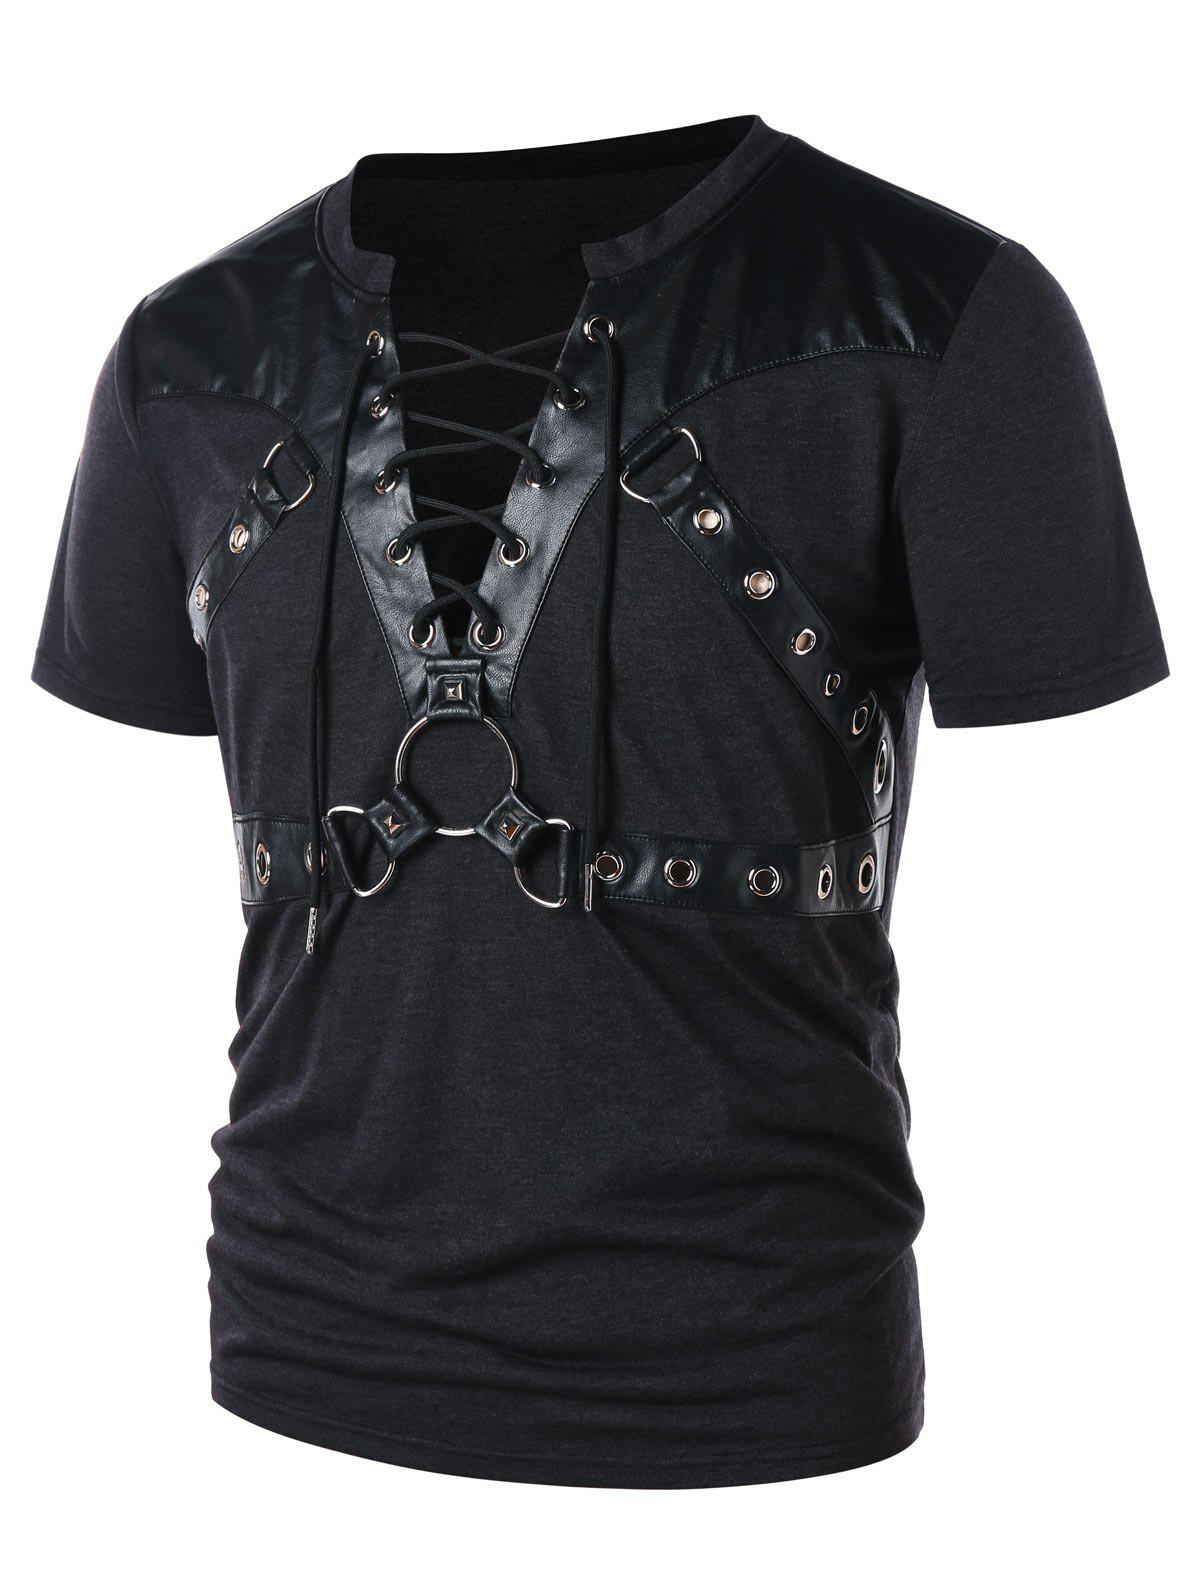 Shop Round Hold Decorated Panel Lace Up T-shirt